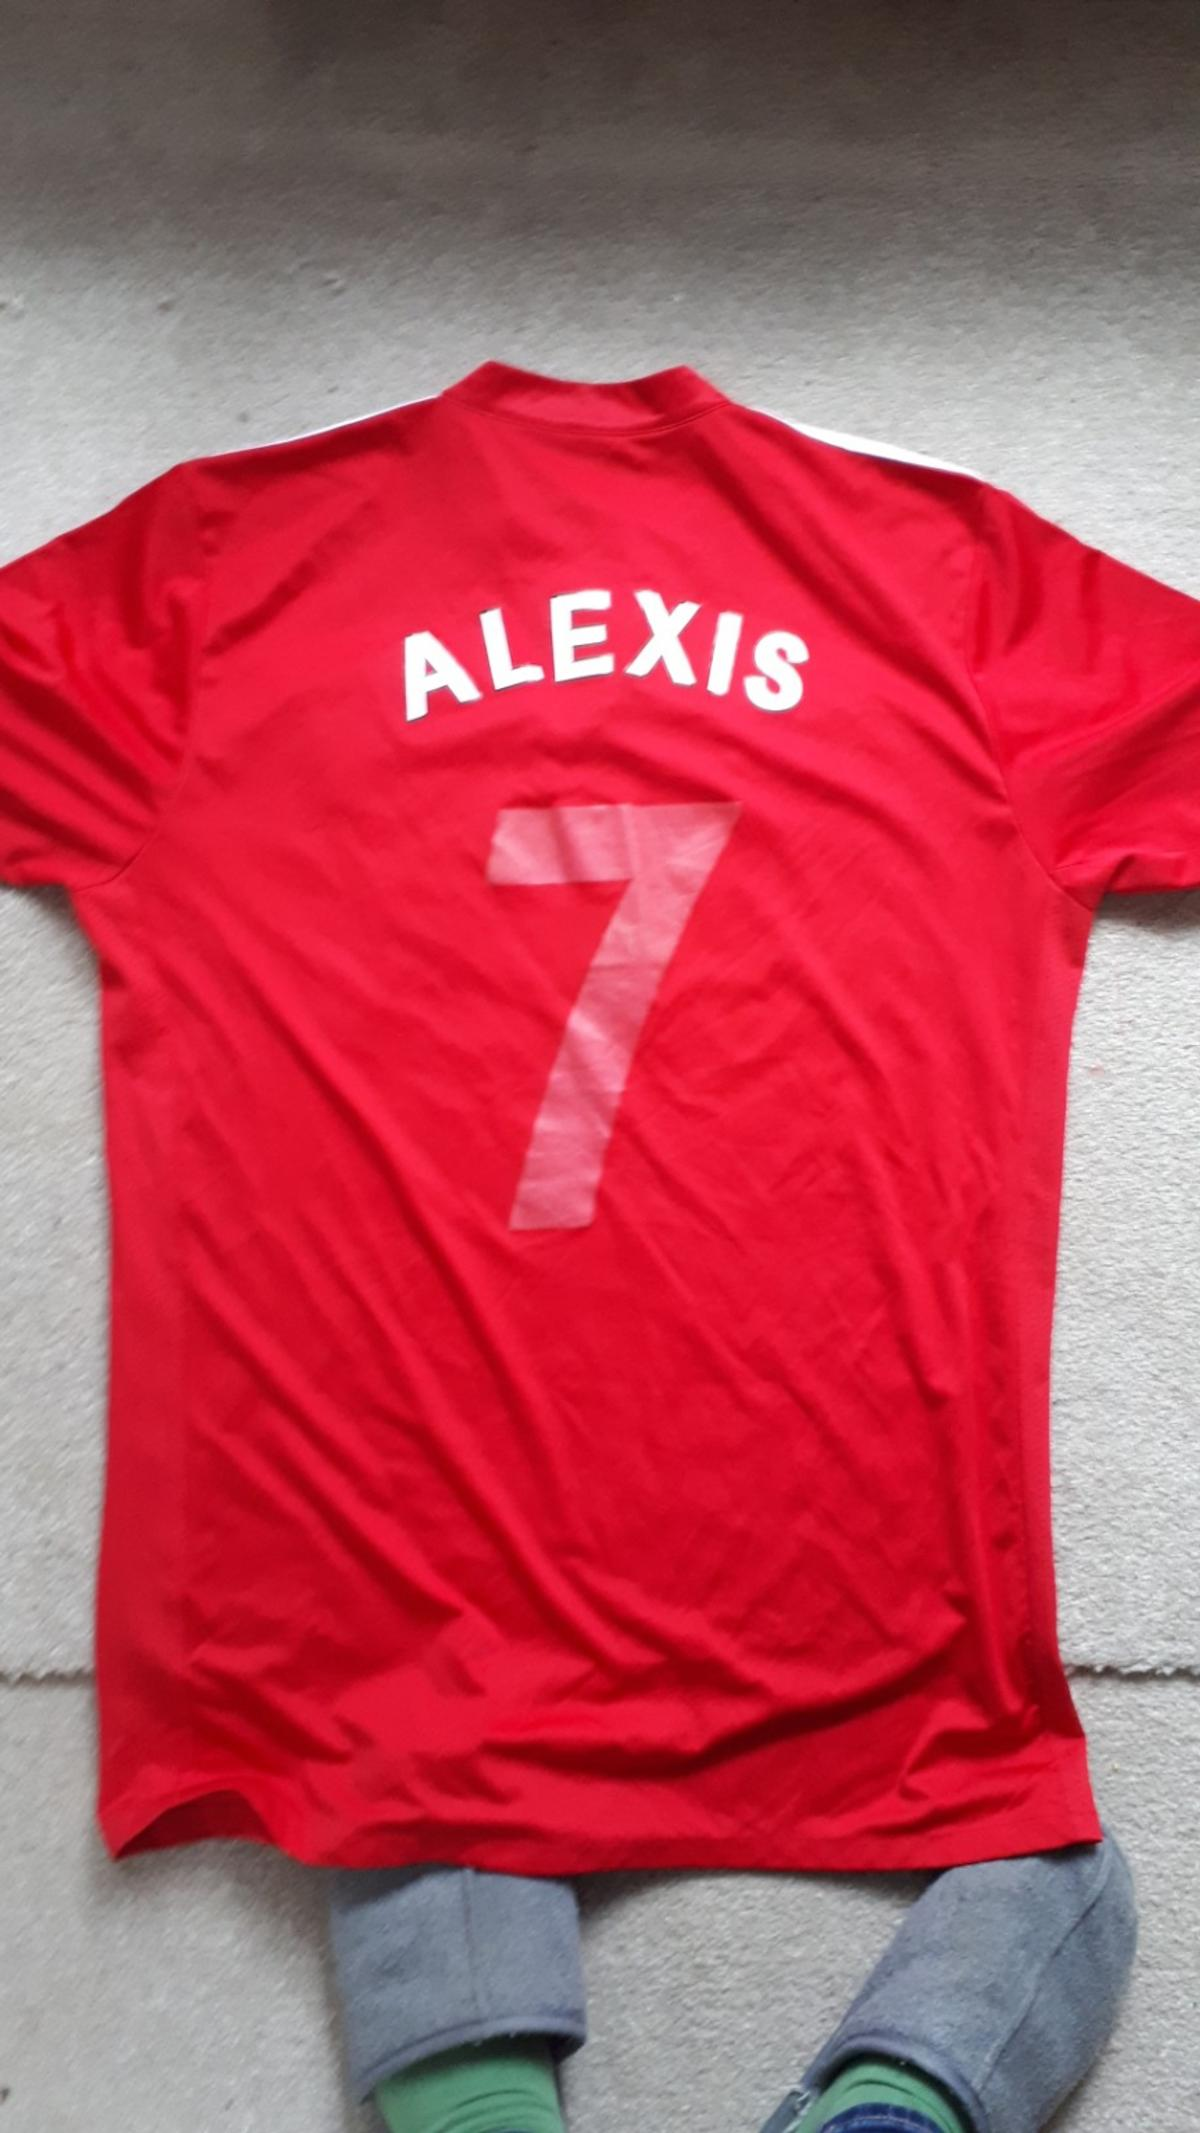 sports shoes e5be4 2bb62 Adidas Manchester United Alexis shirt